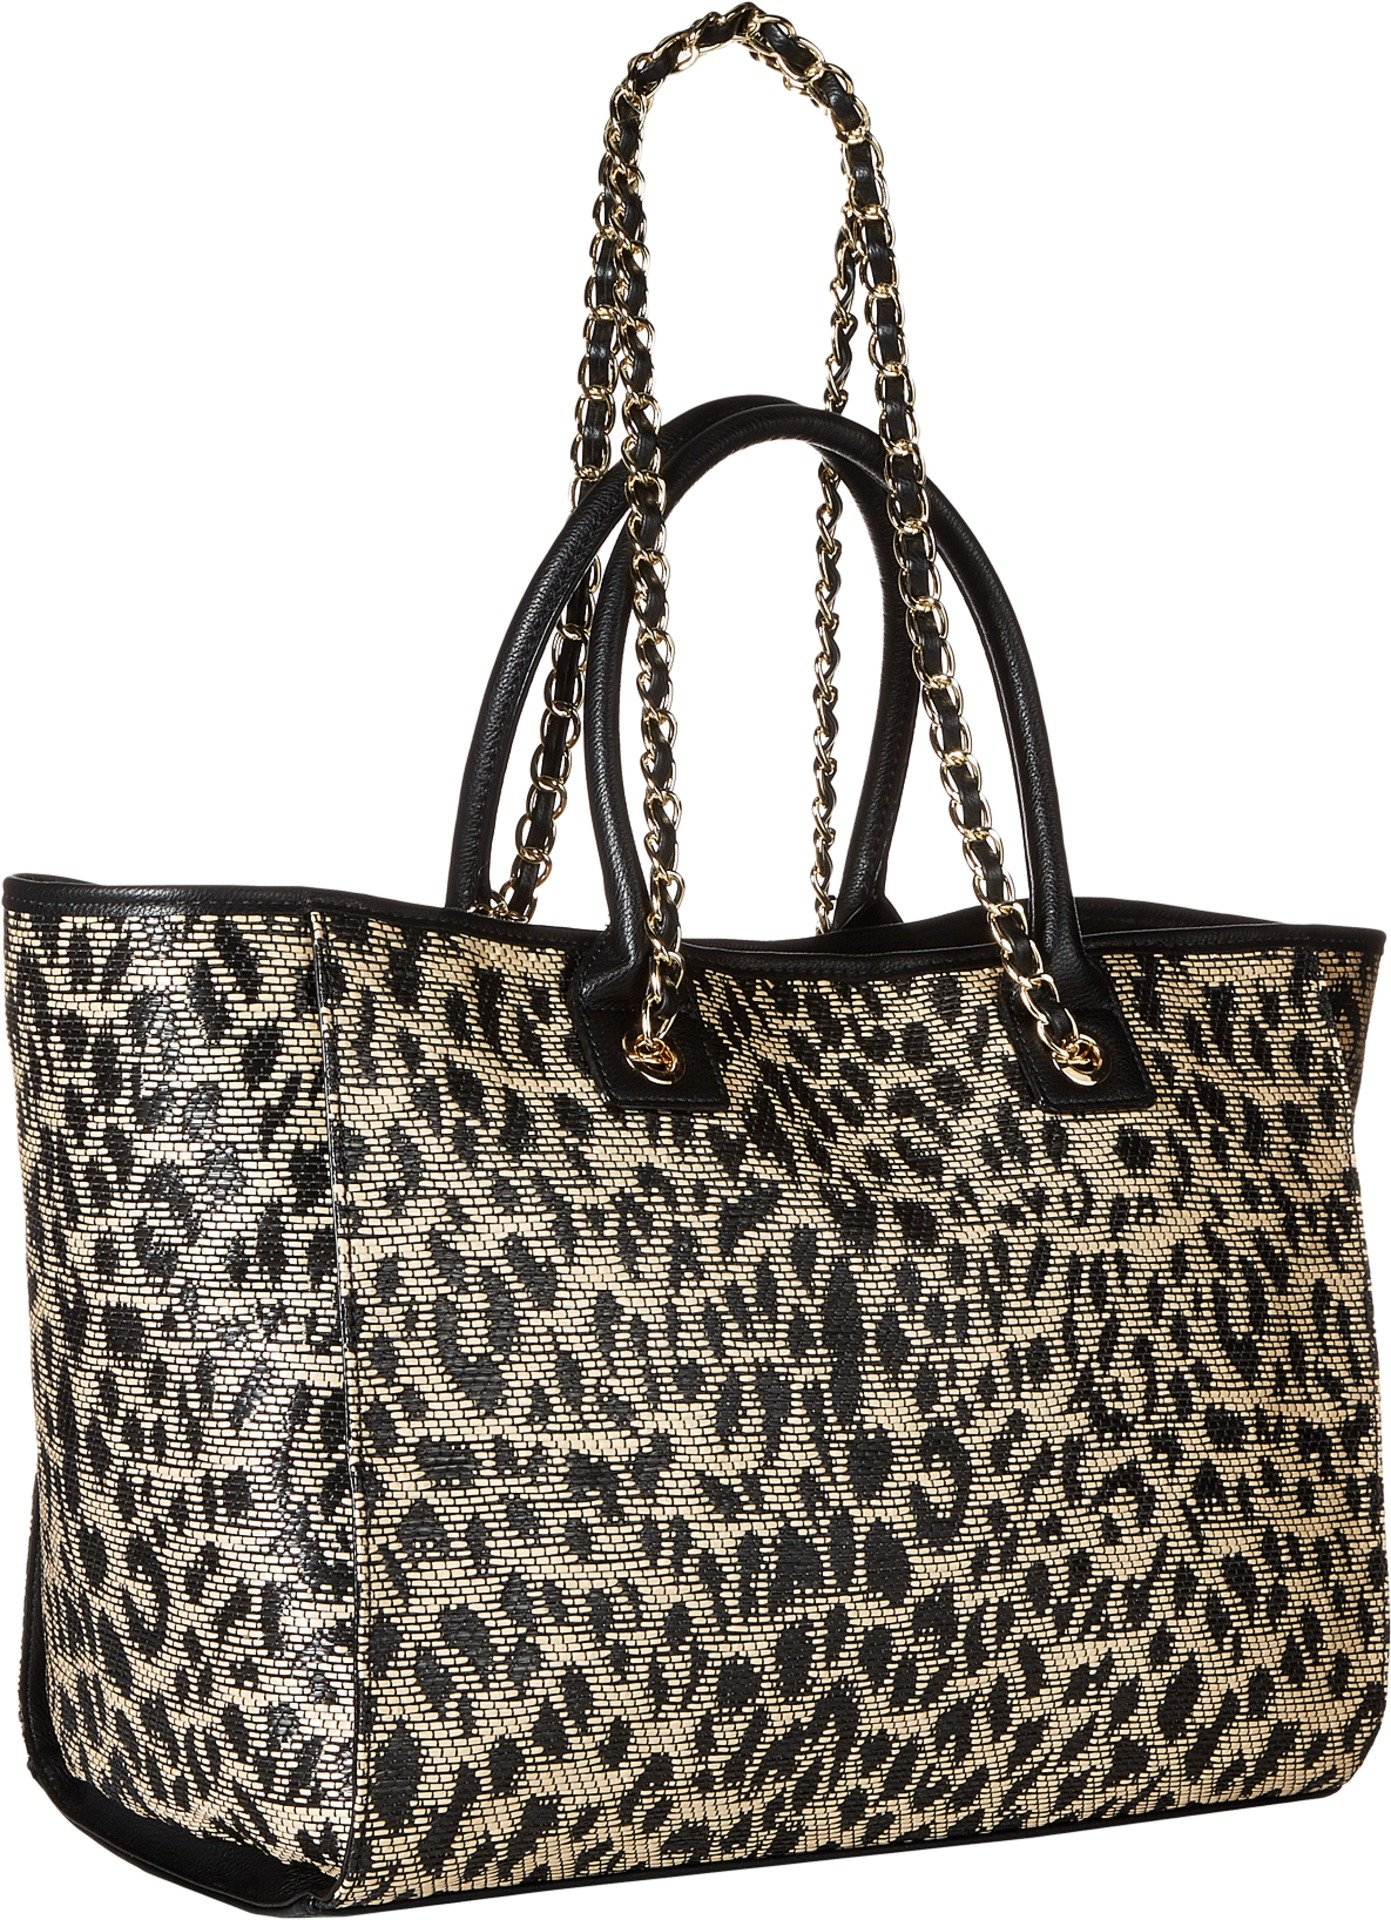 Betsey Johnson Mighty Jungle Large Tote, Leopard by Betsey Johnson (Image #1)